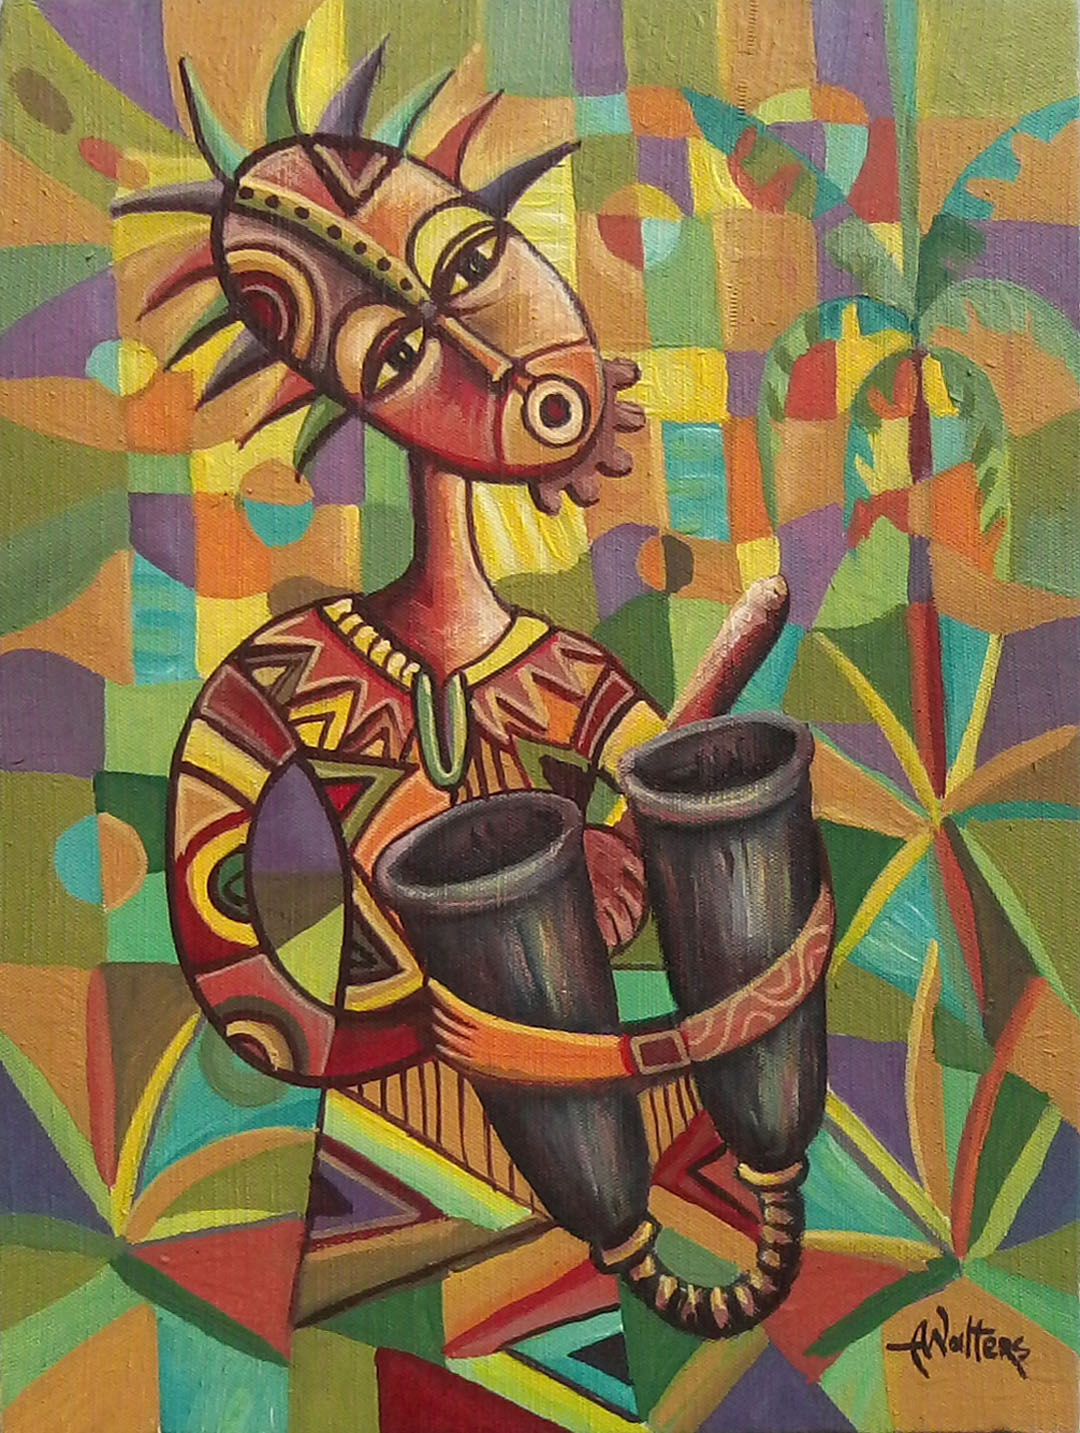 Painting of African drums player in acrylics.